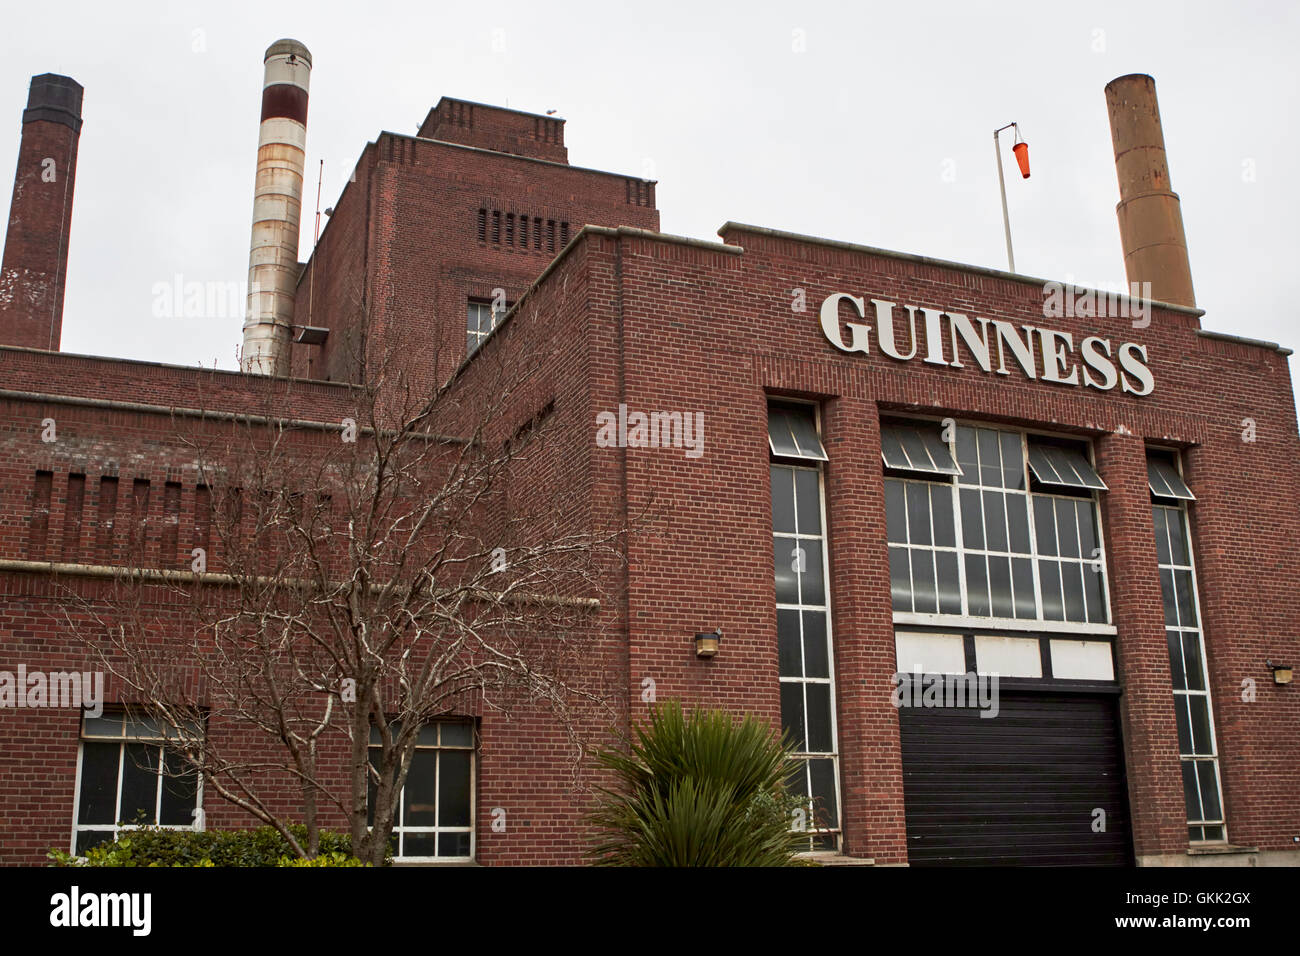 guinness brewery st james's gate dublin Ireland - Stock Image